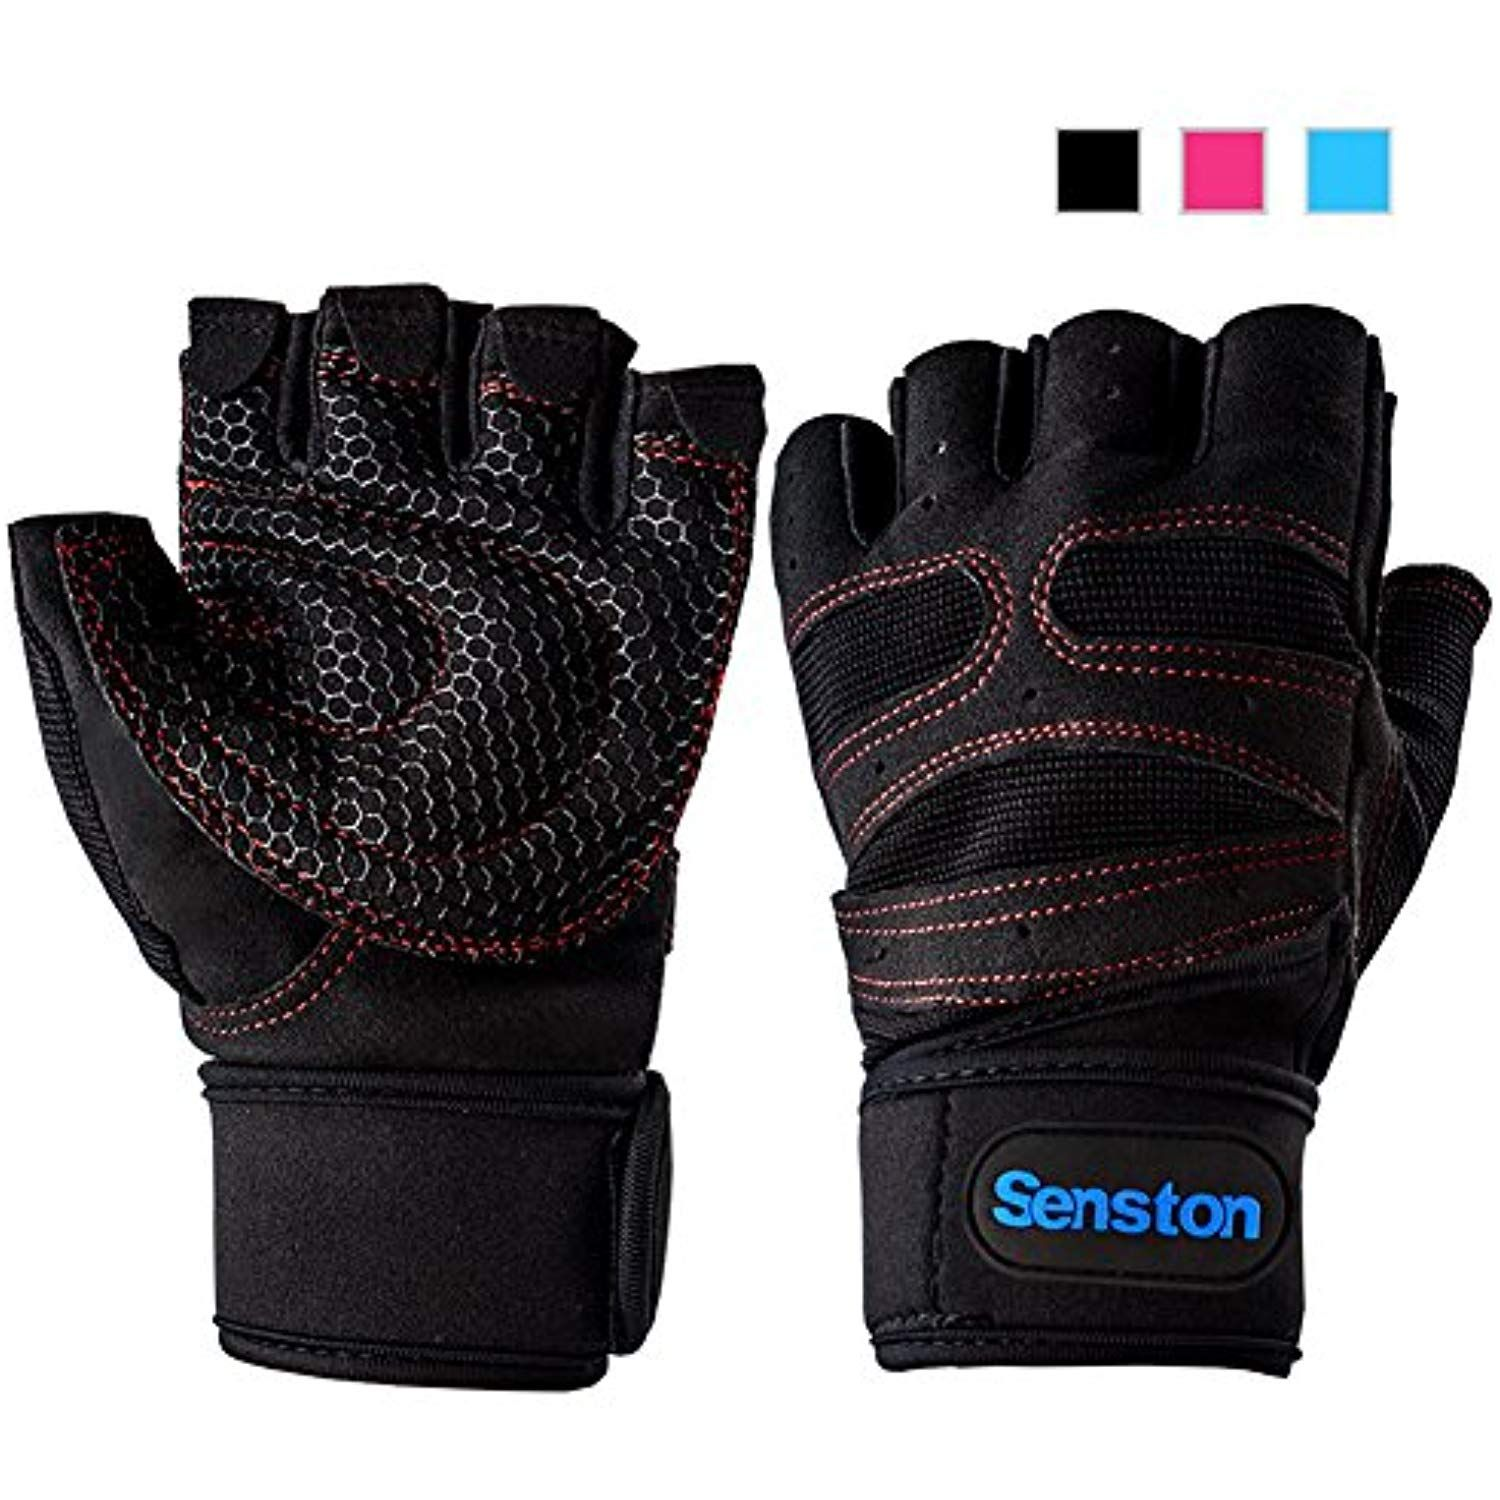 Leather Wheelchair Fitness Training Wrist strap weight Lifting Fingerless Gloves